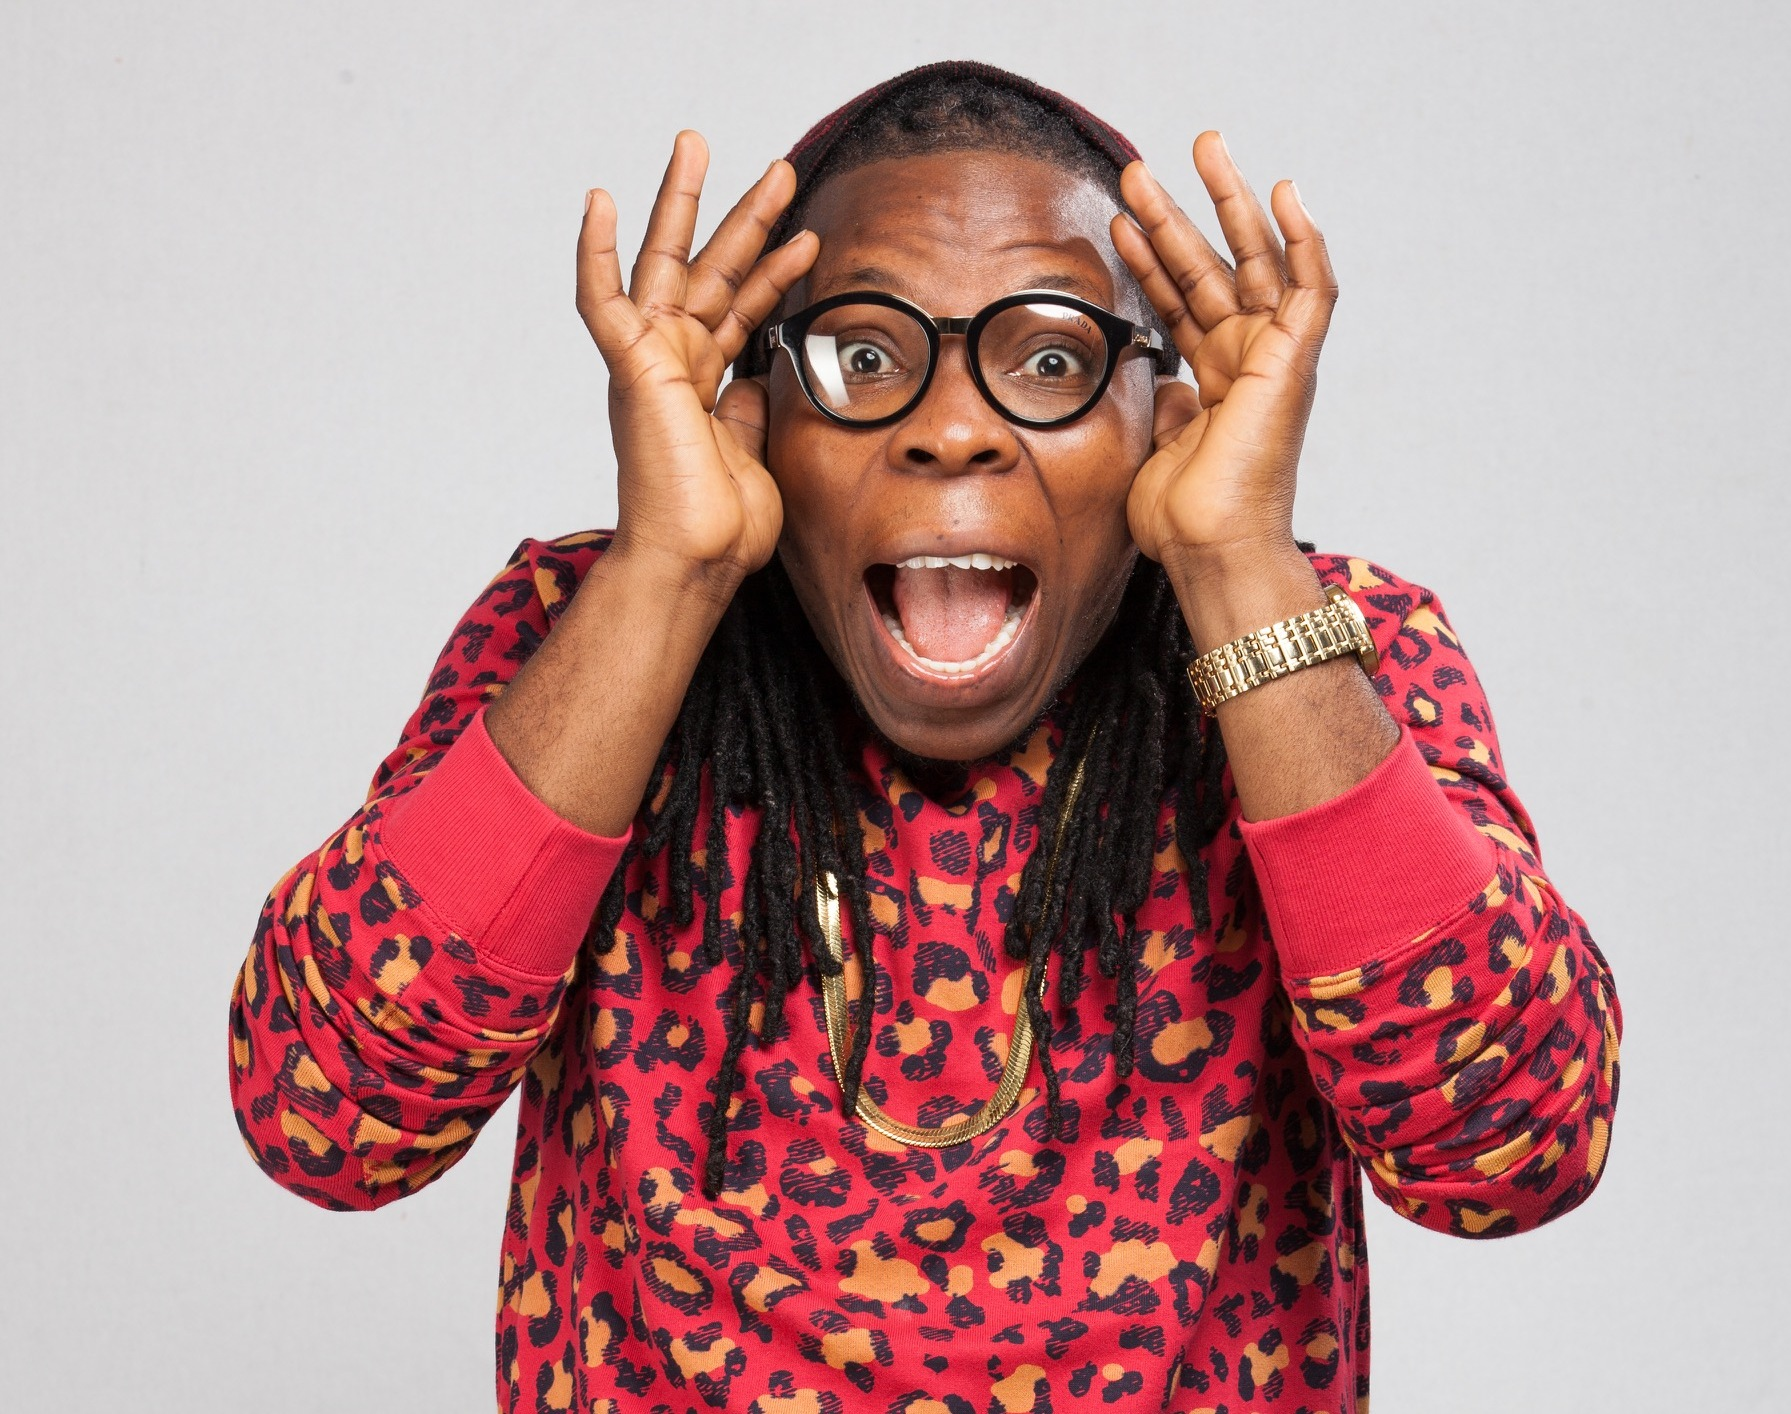 Don't blame economy, spend within your means - Edem slams Moesha